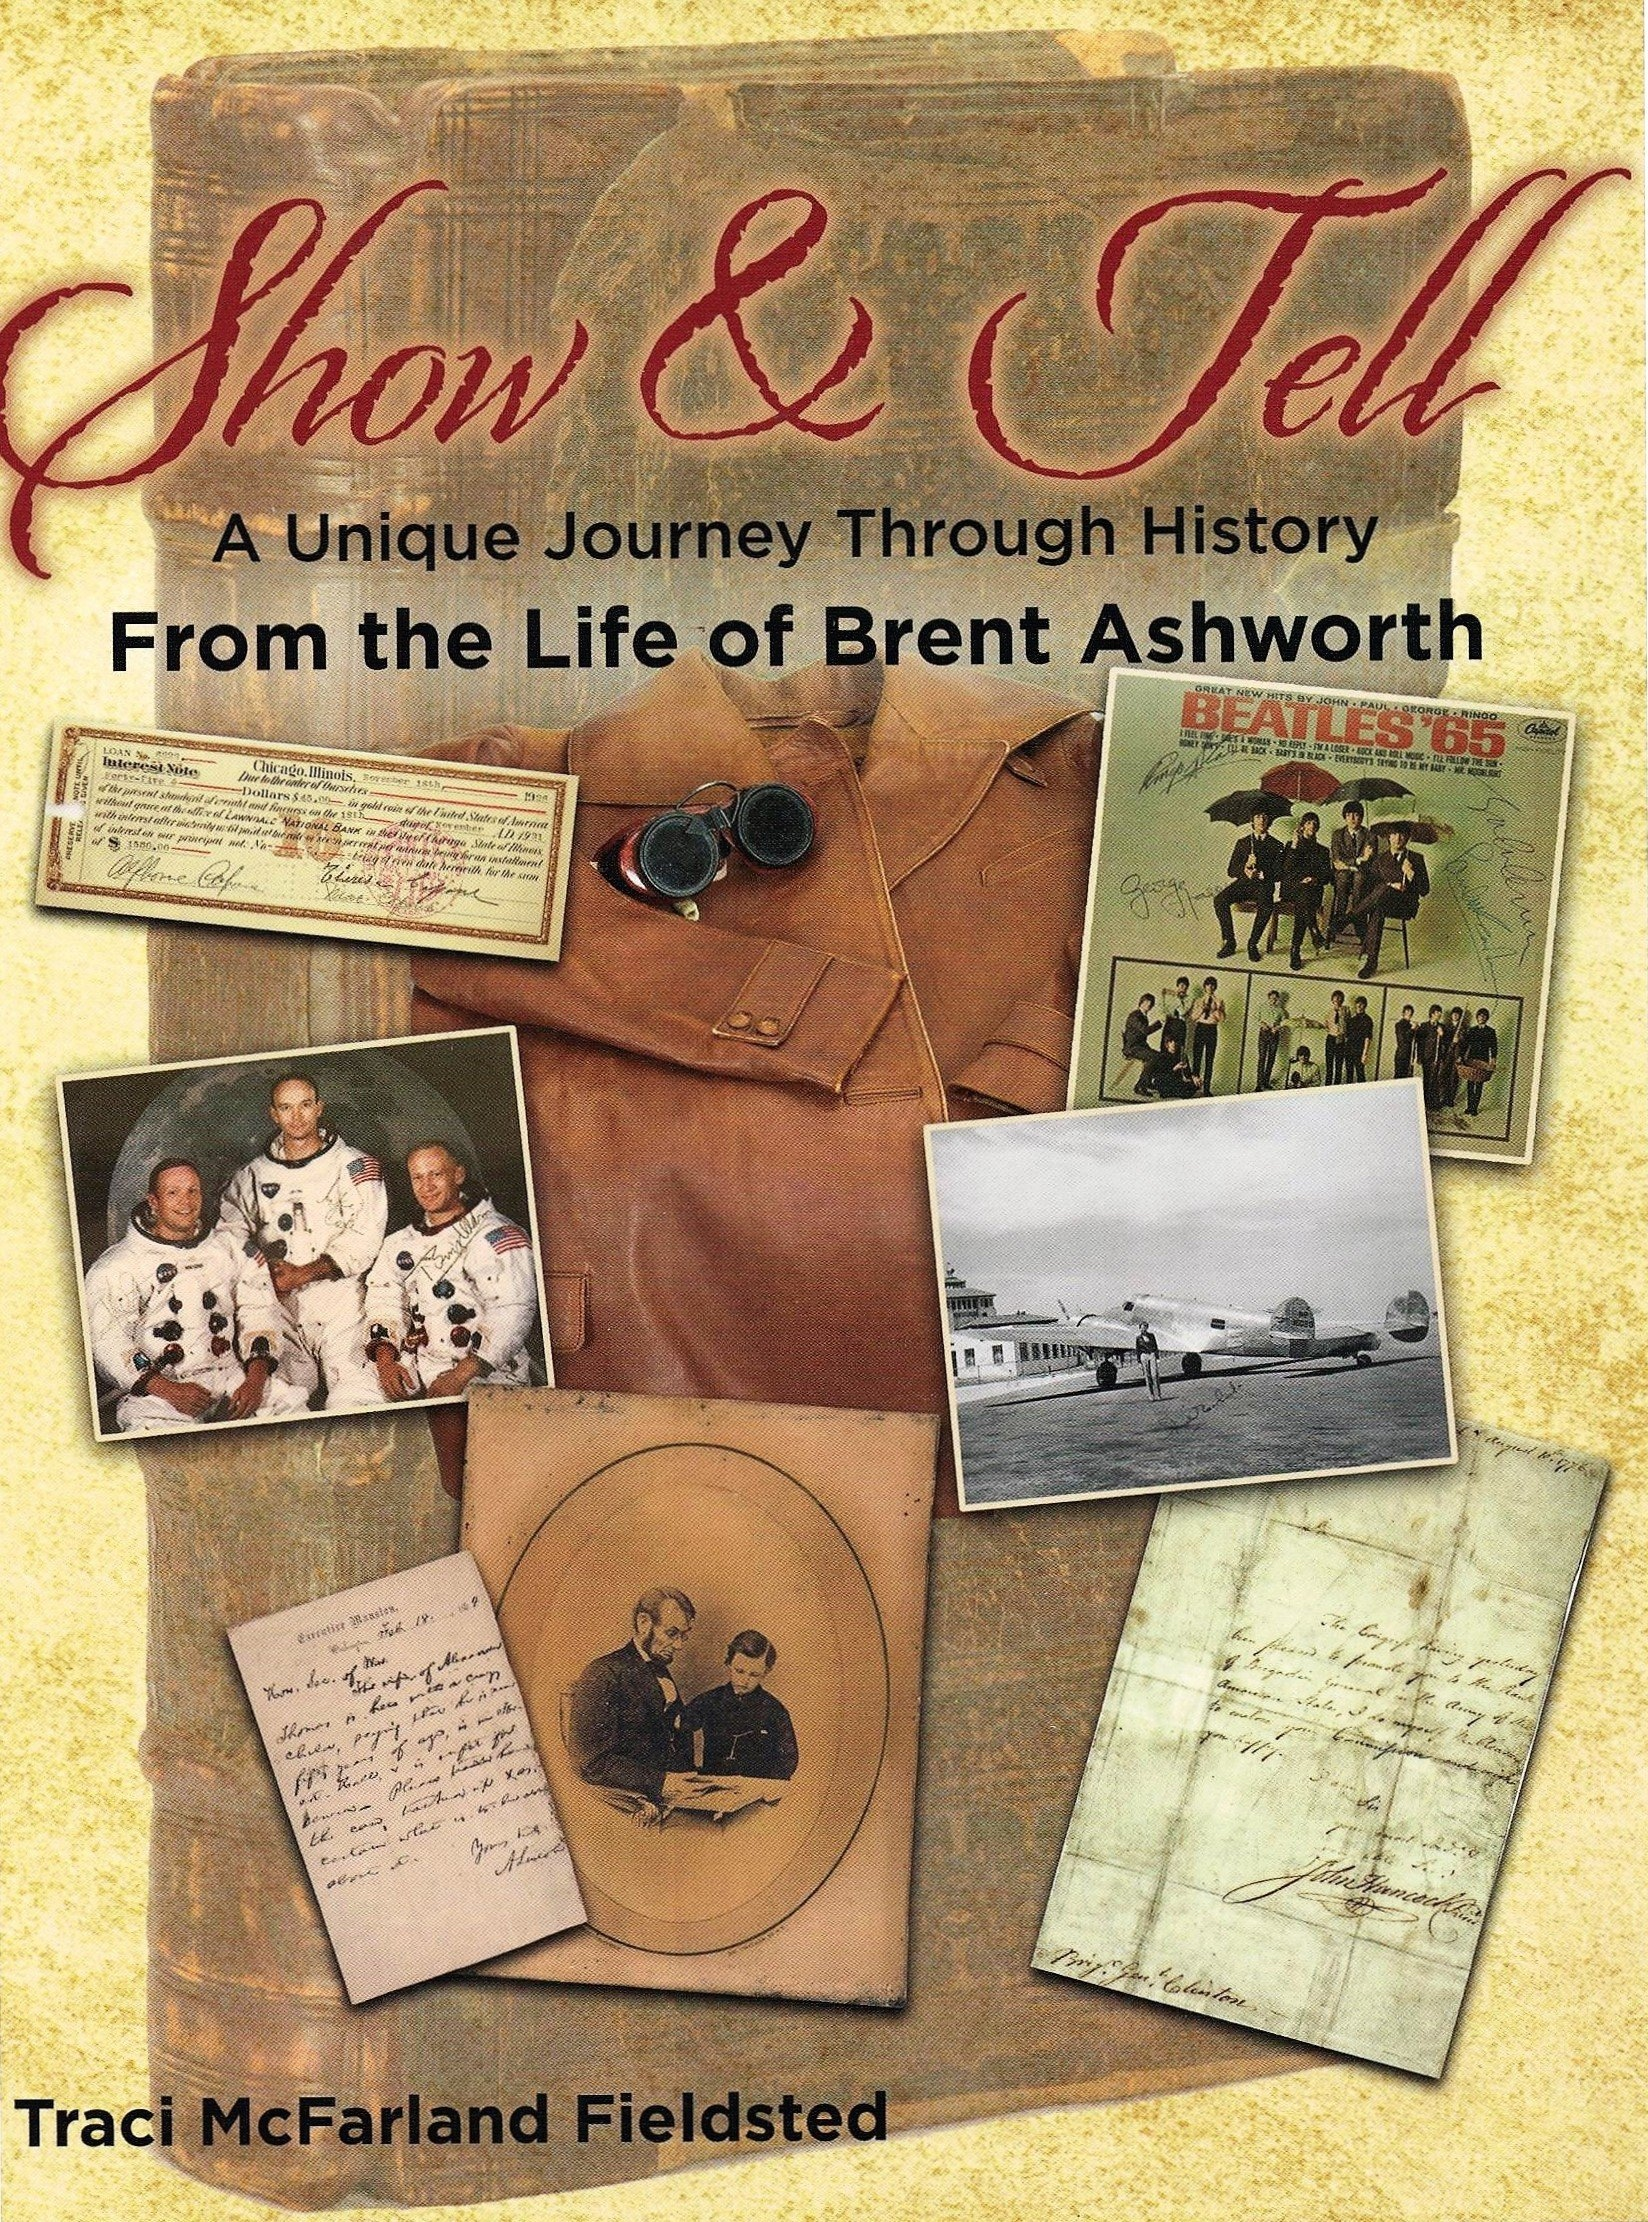 Show and Tell, A Unique Journey Through History From the Life of Brent Ashworth